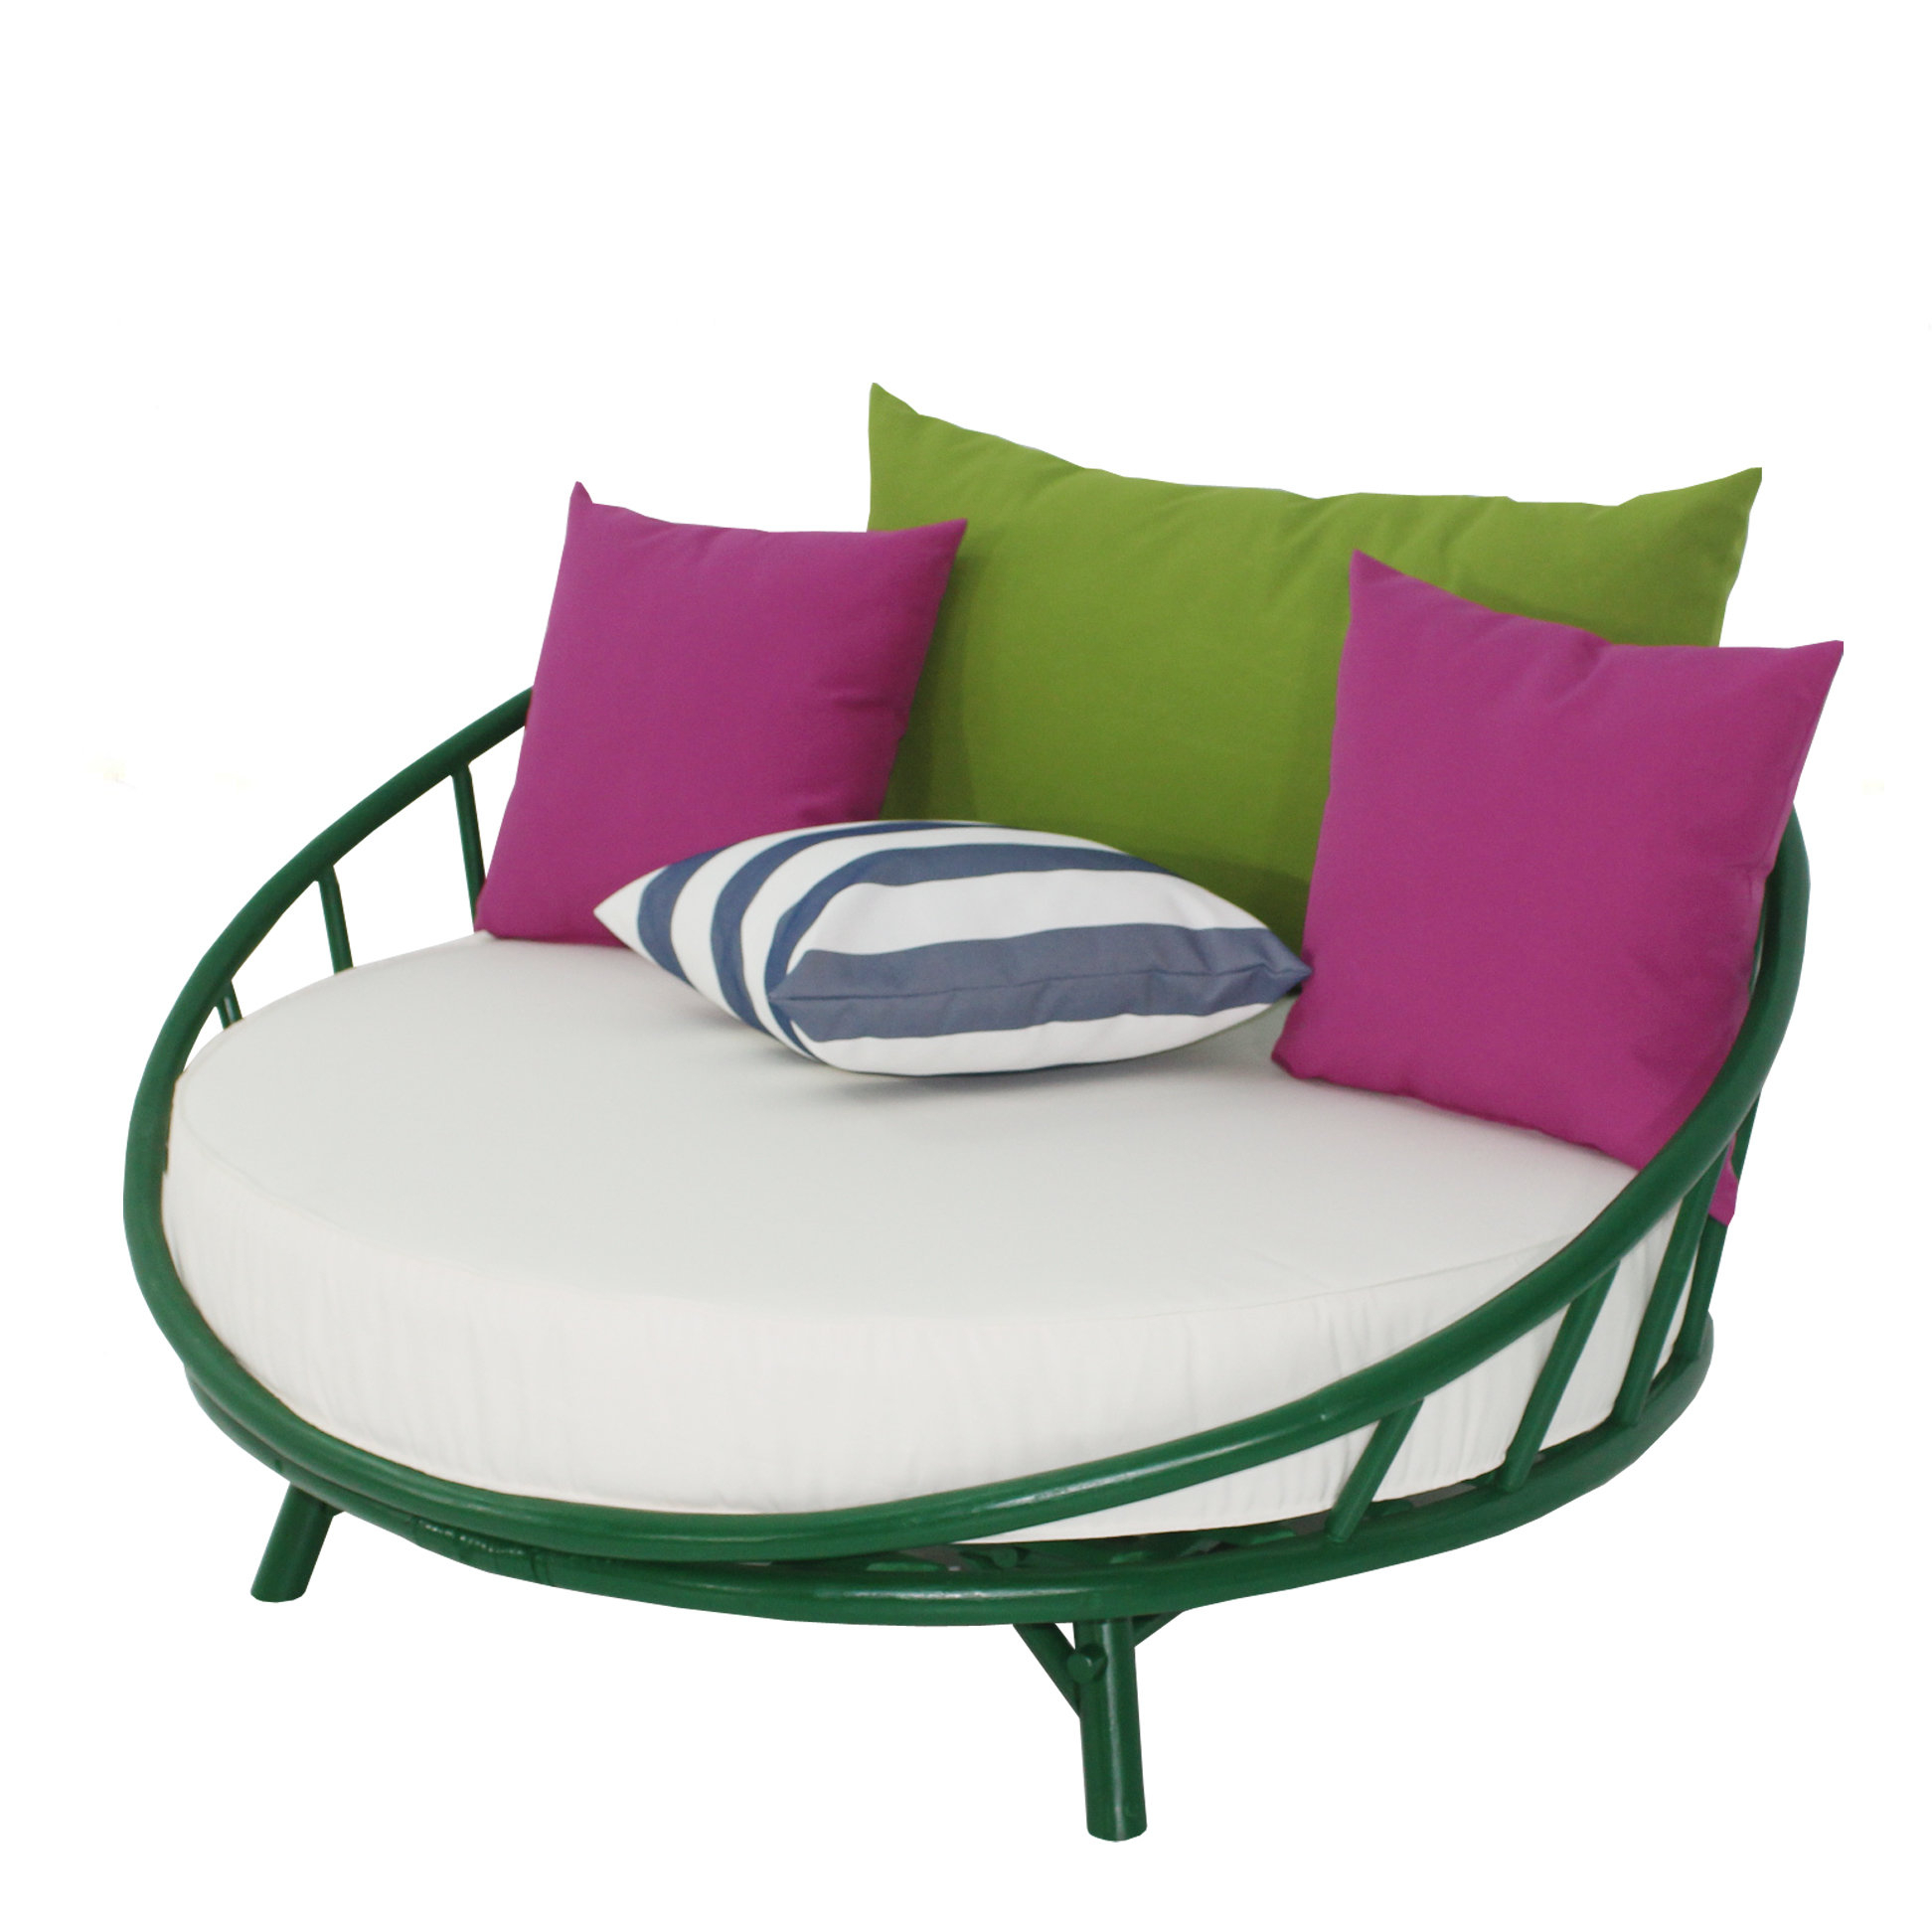 Fashionable Olu Bamboo Large Round Patio Daybed With Cushions For Freeport Patio Daybeds With Cushion (View 2 of 20)